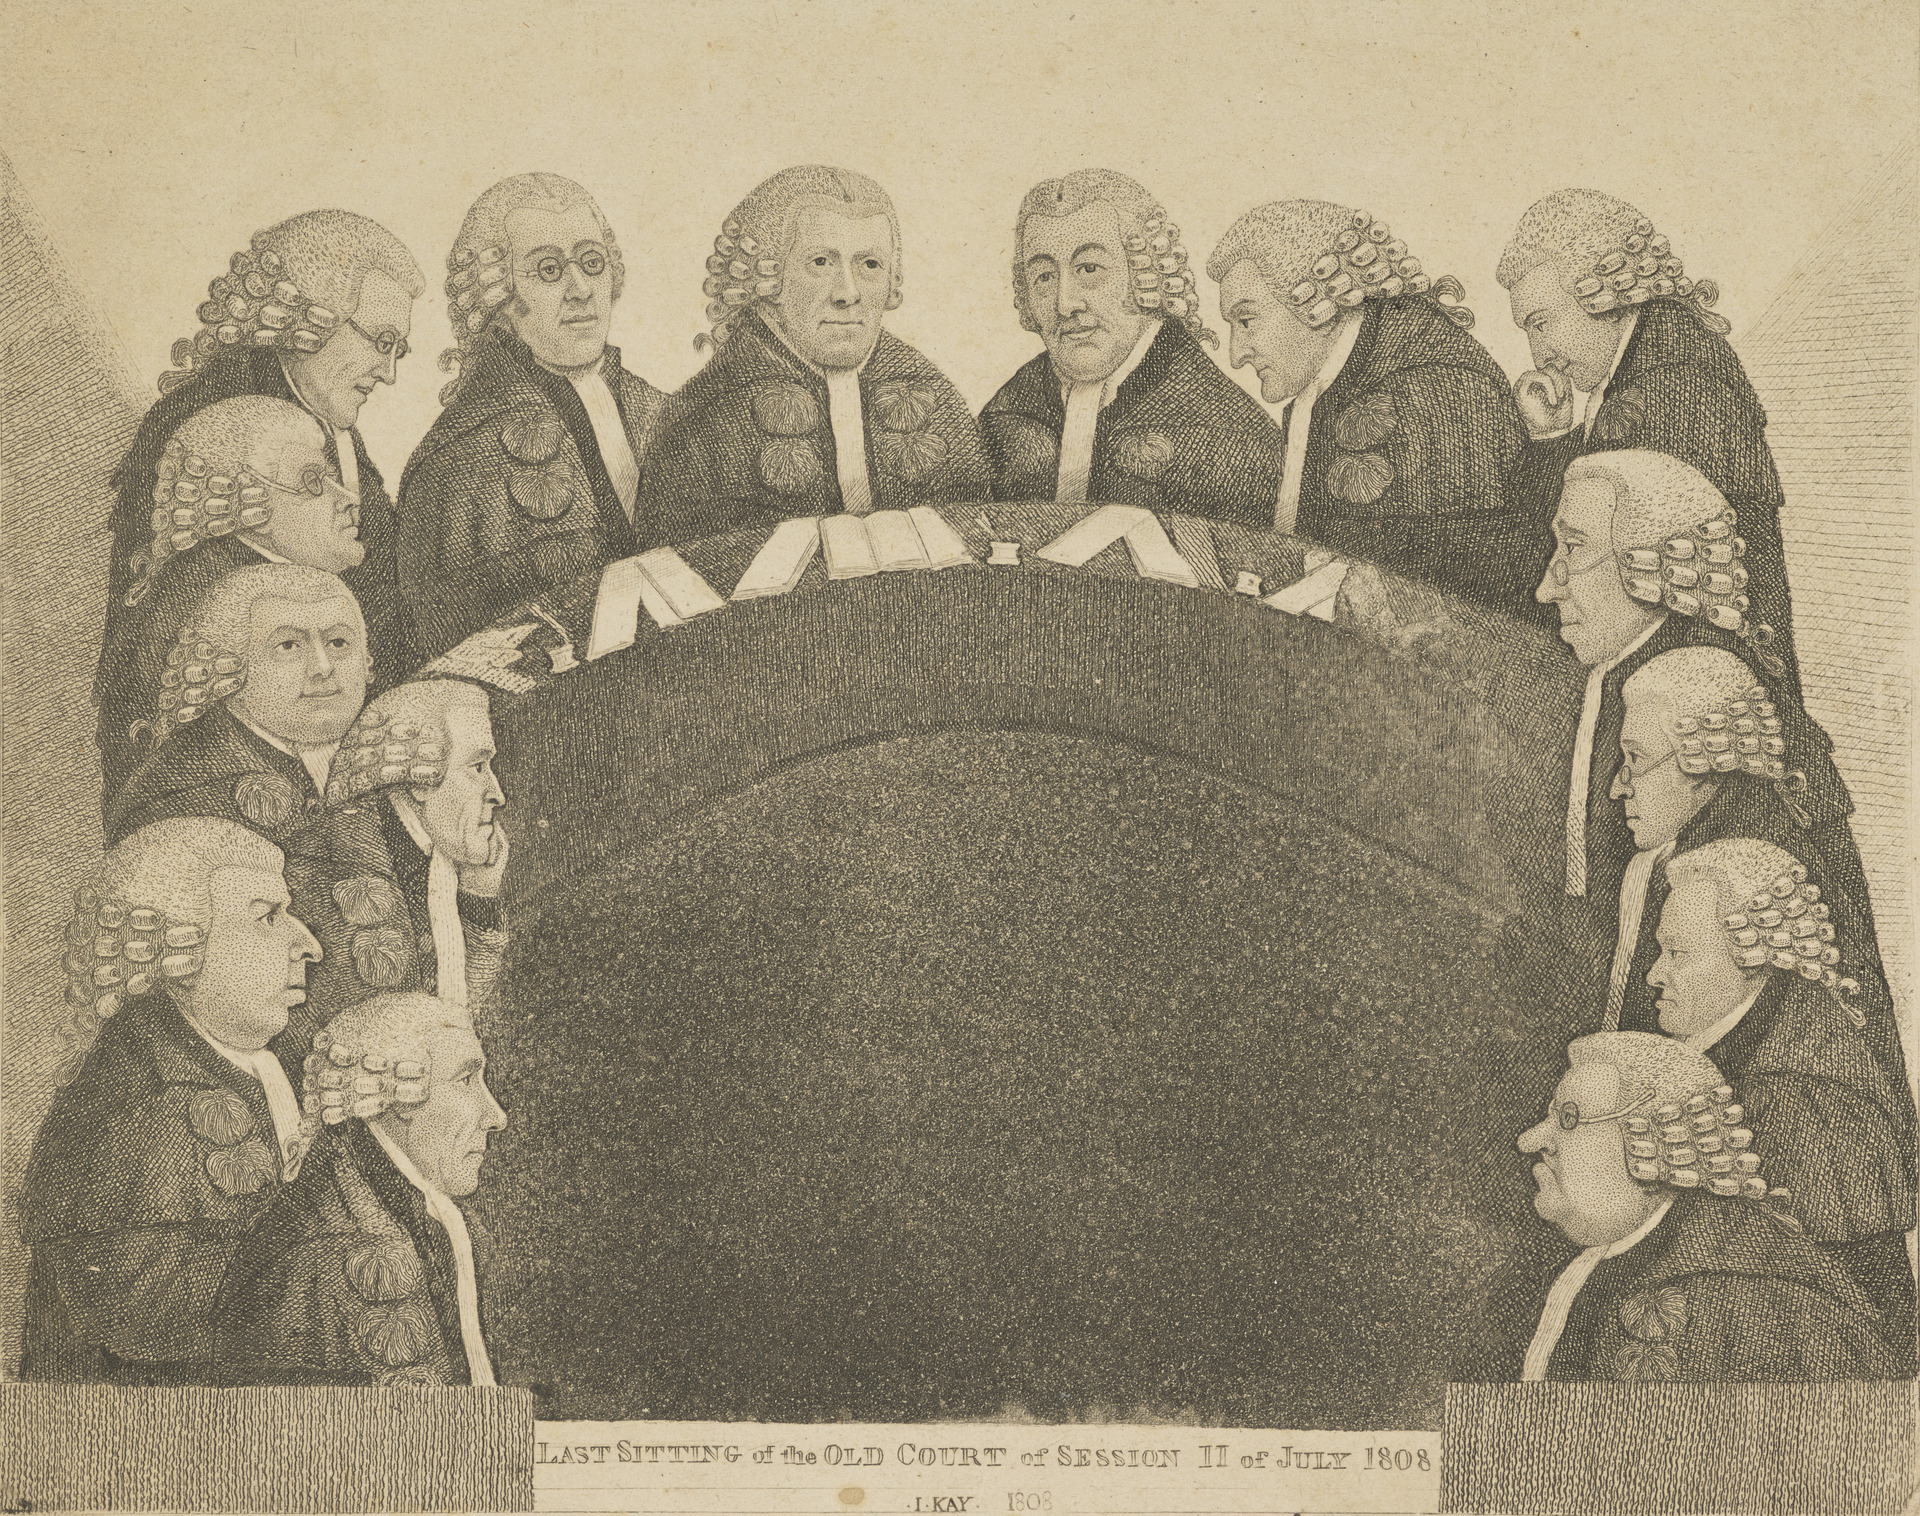 The Last sitting of the Old Court of Session